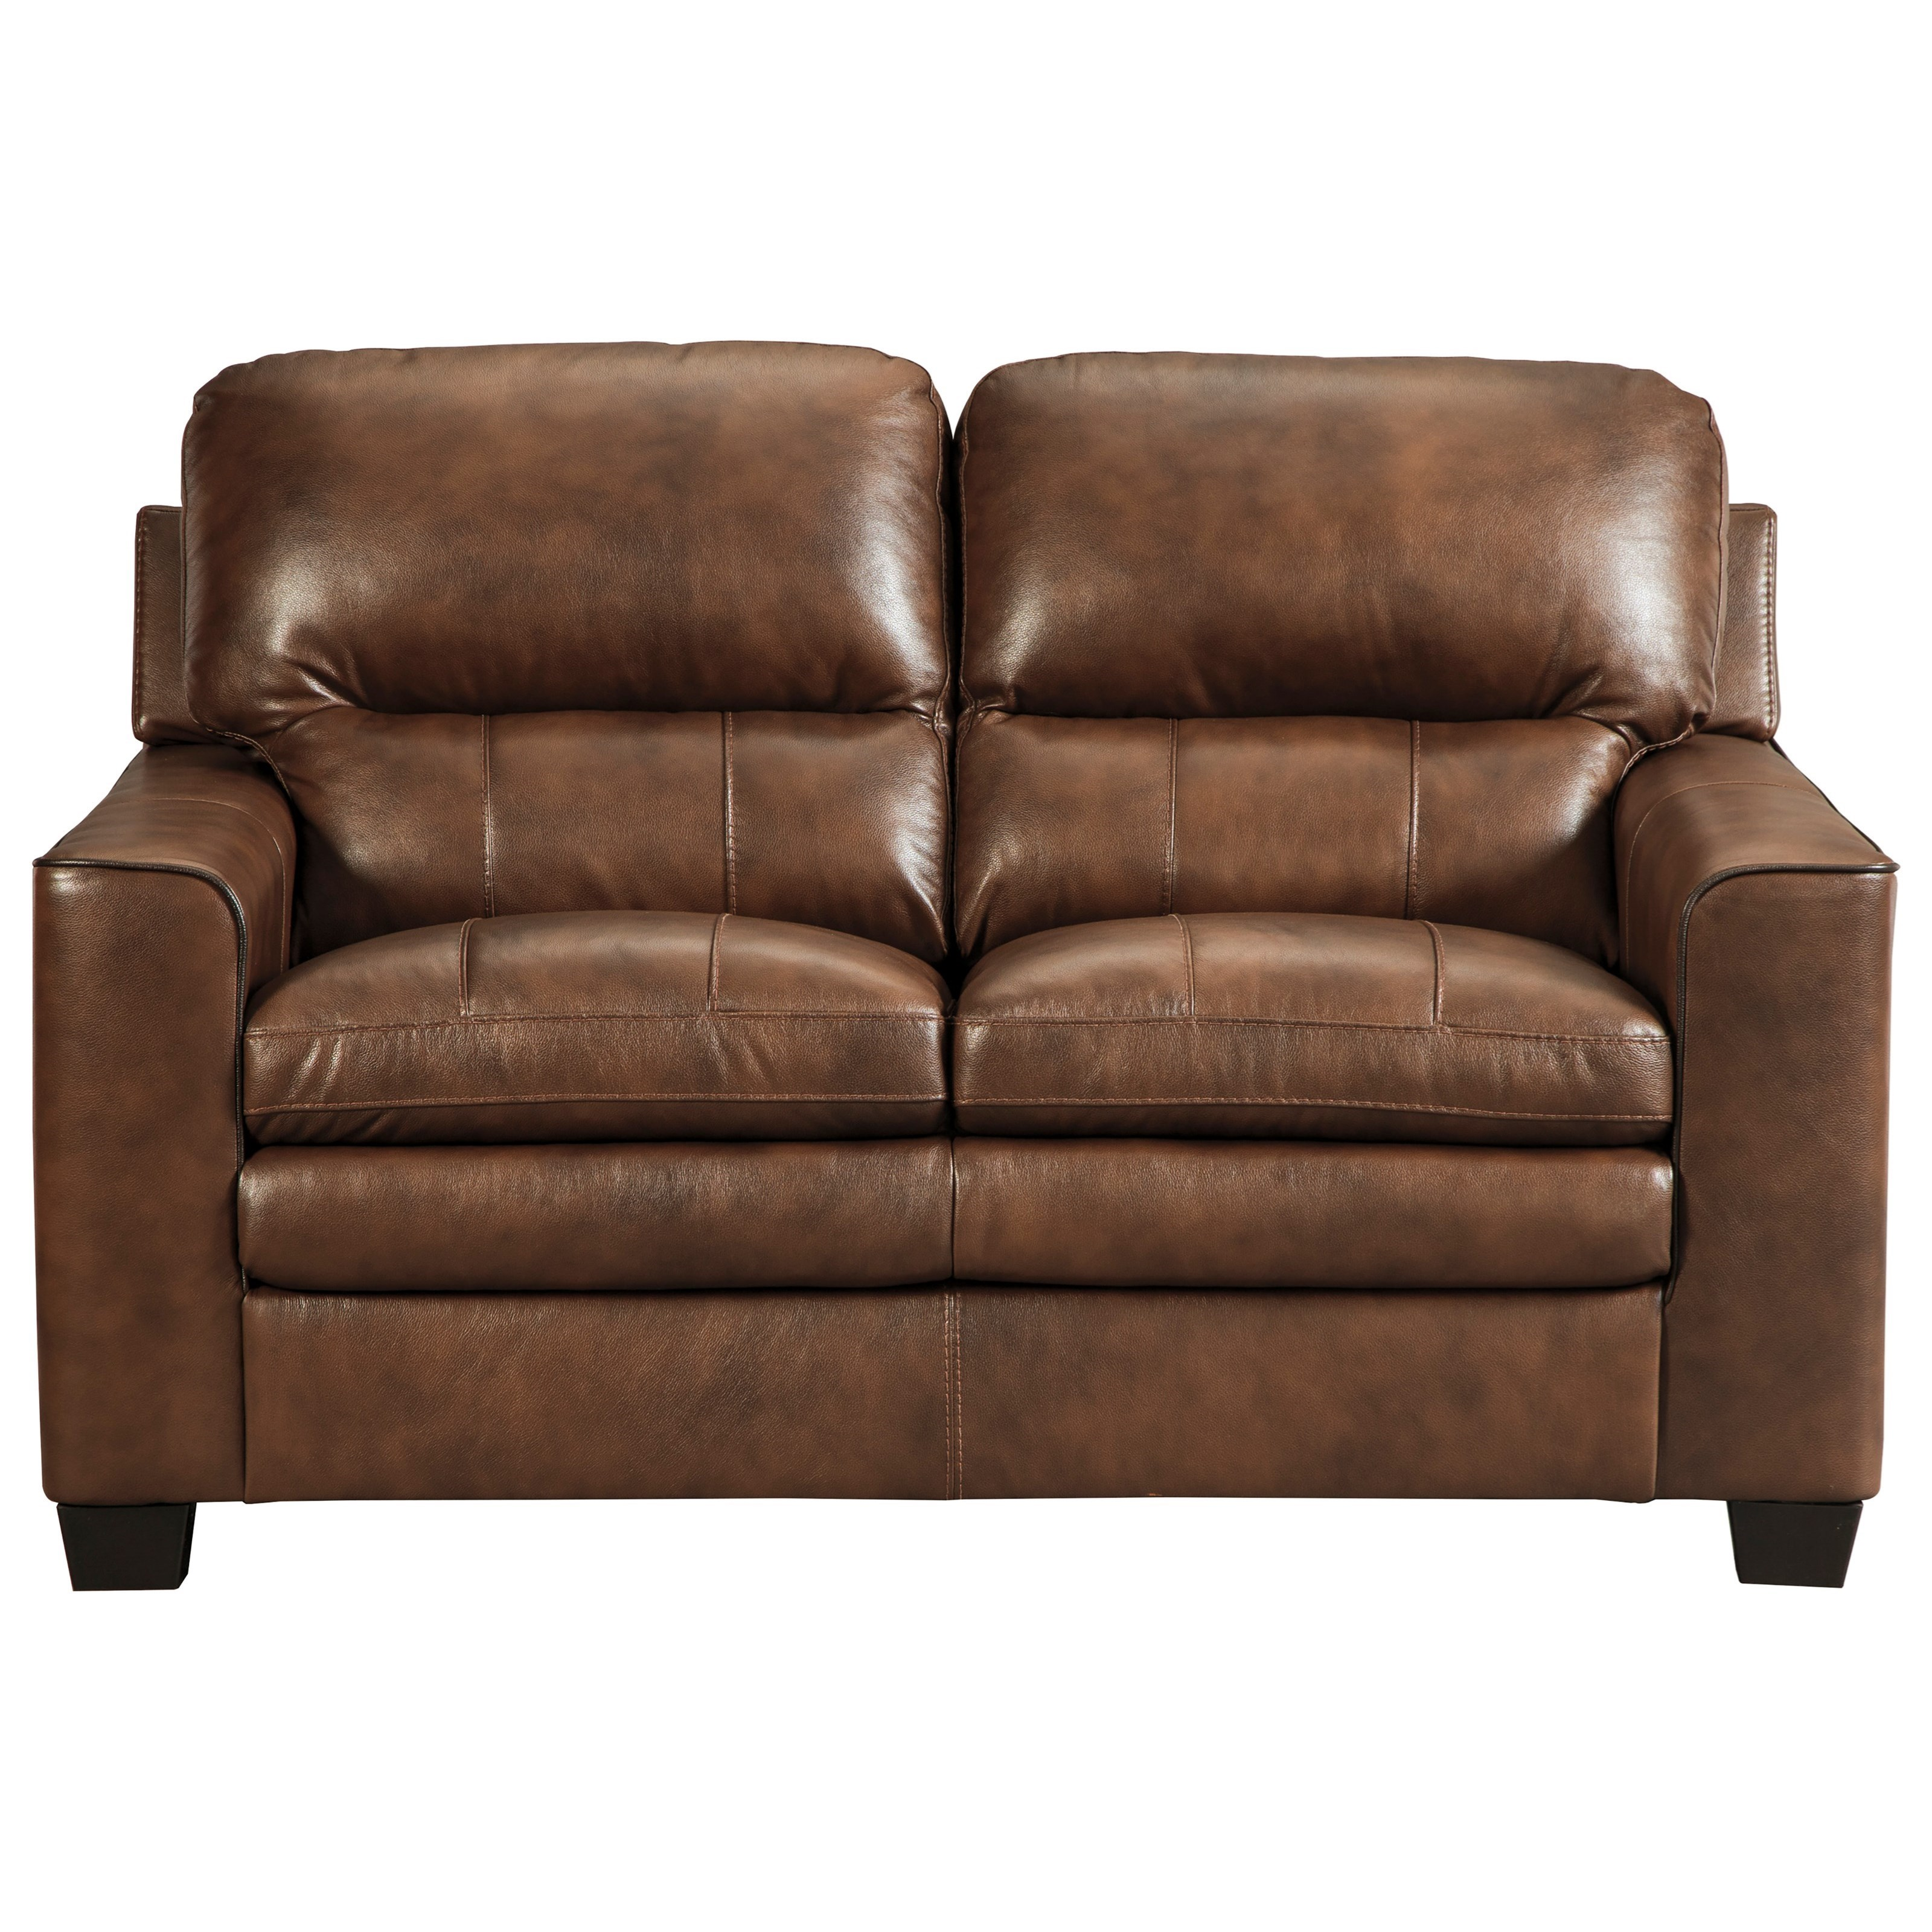 Signature Design by Ashley Gleason Loveseat - Item Number: 1570335